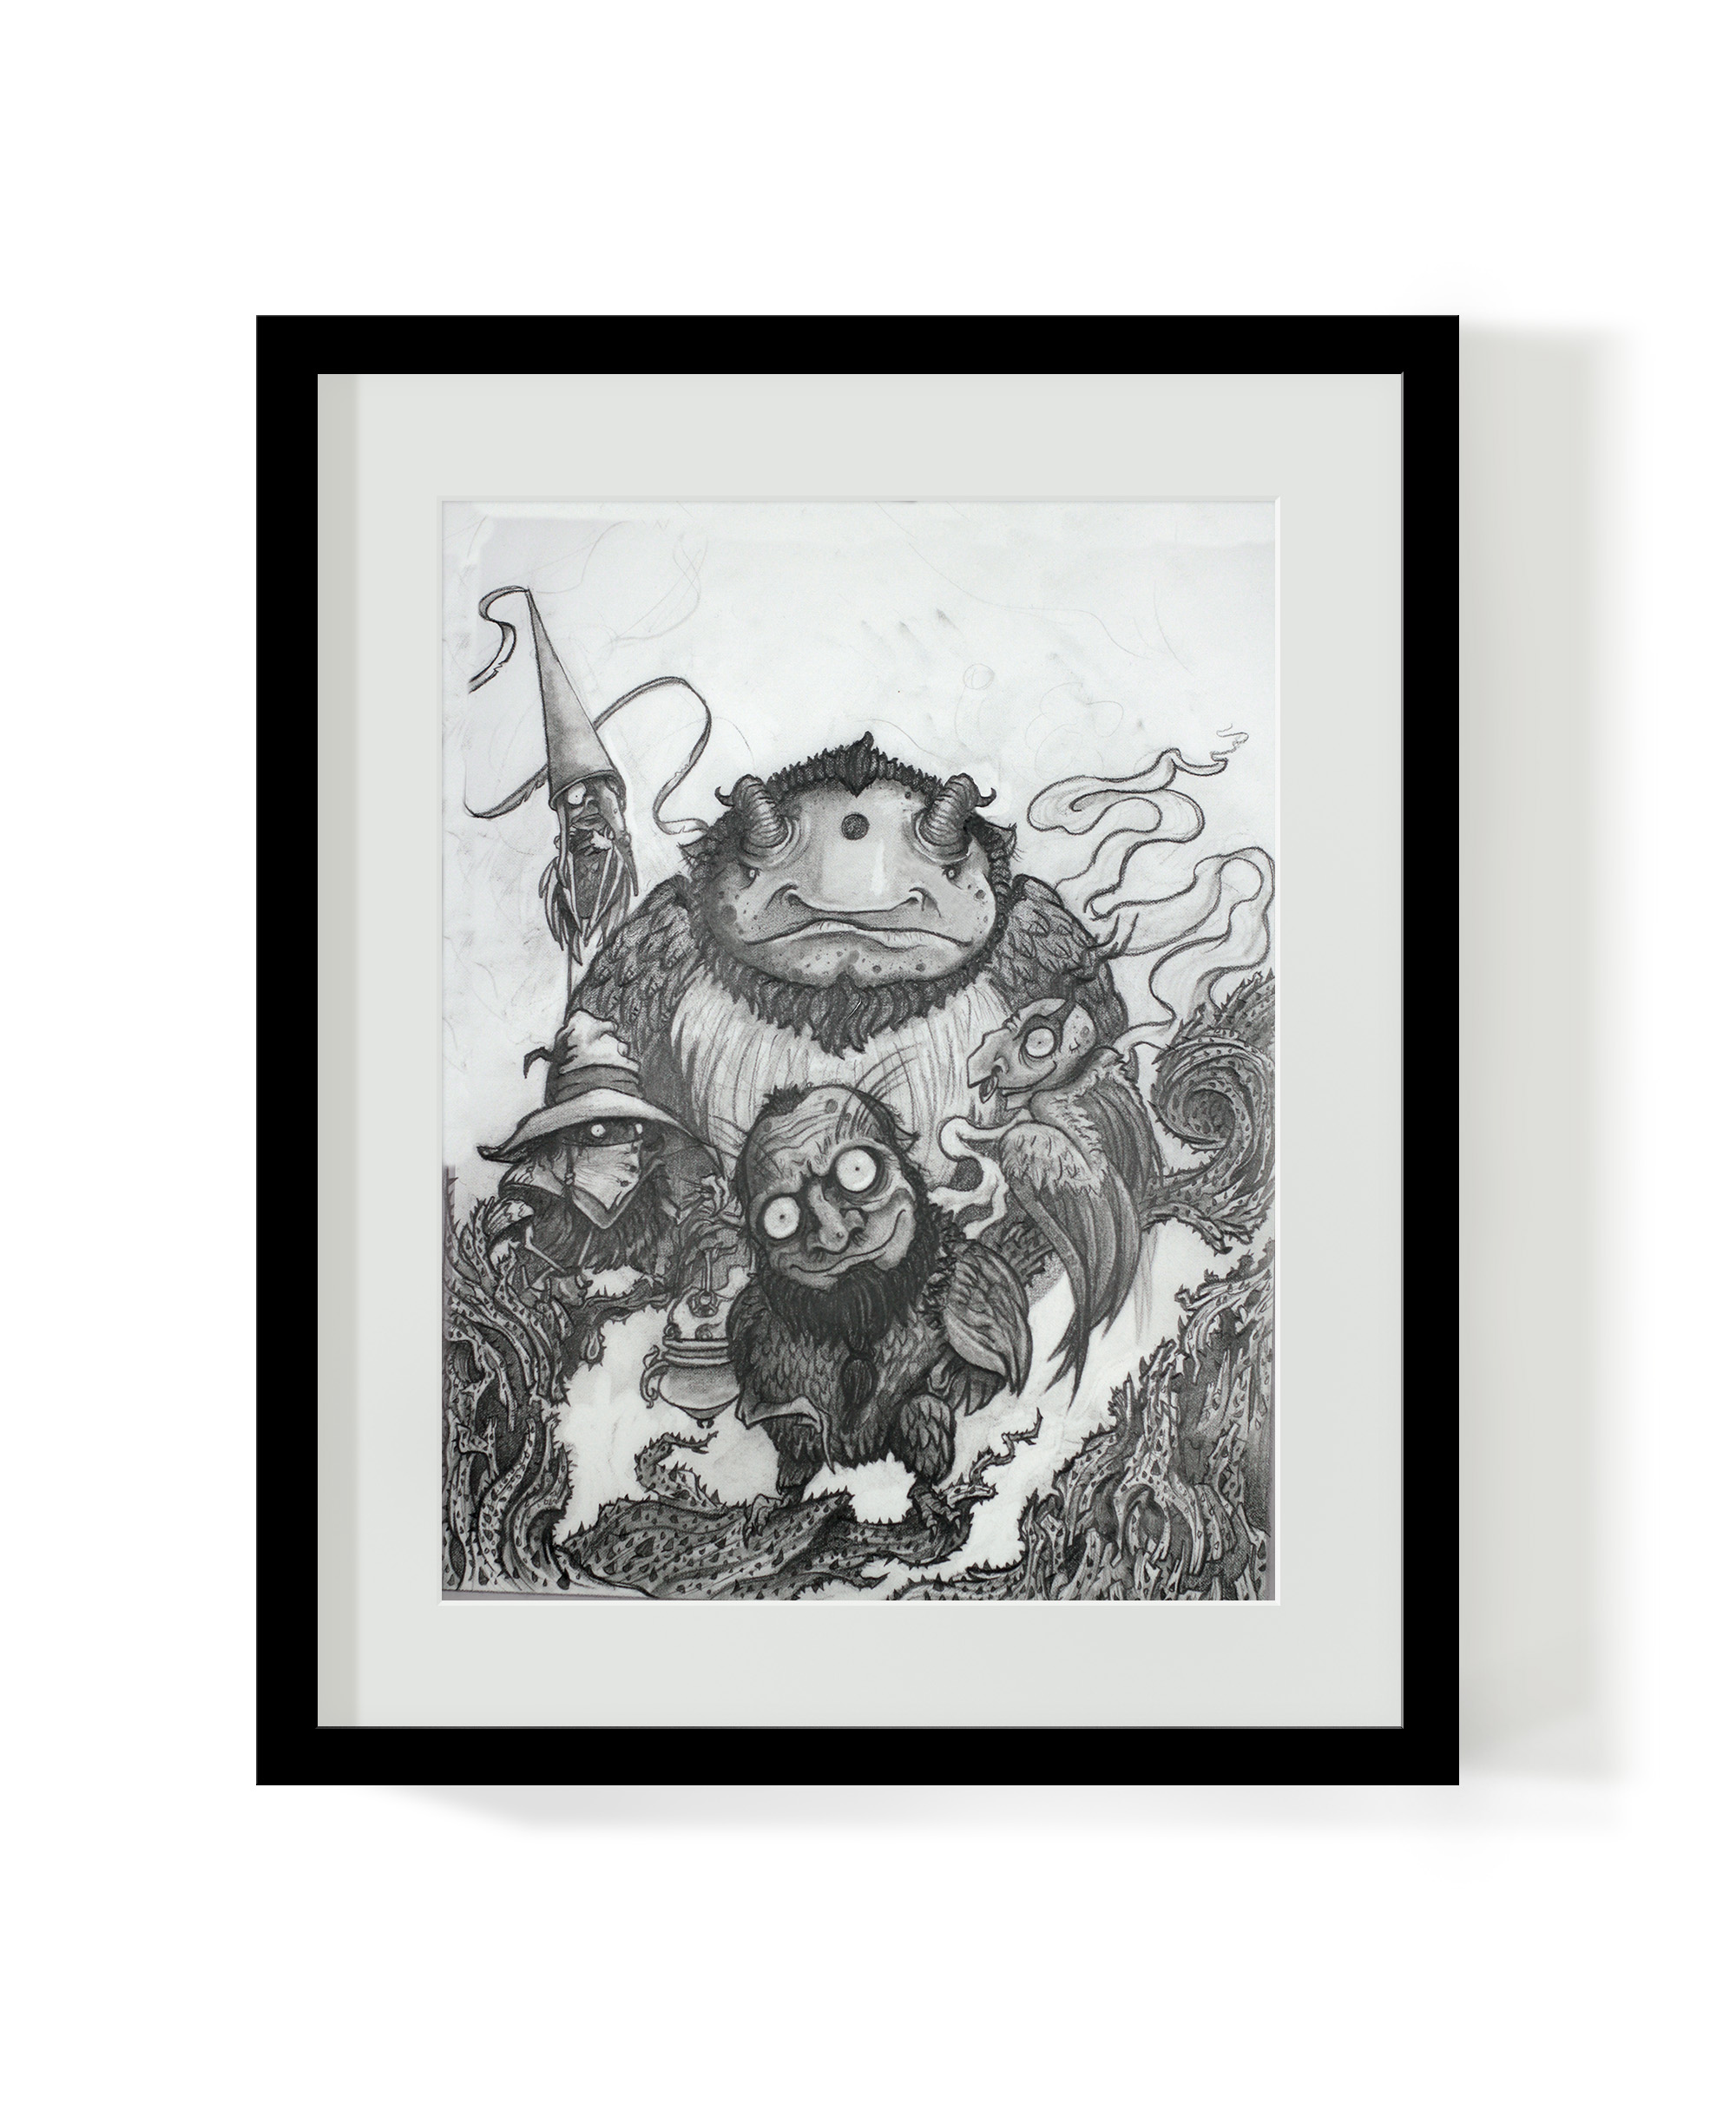 The Strix Original Drawing (Sold)